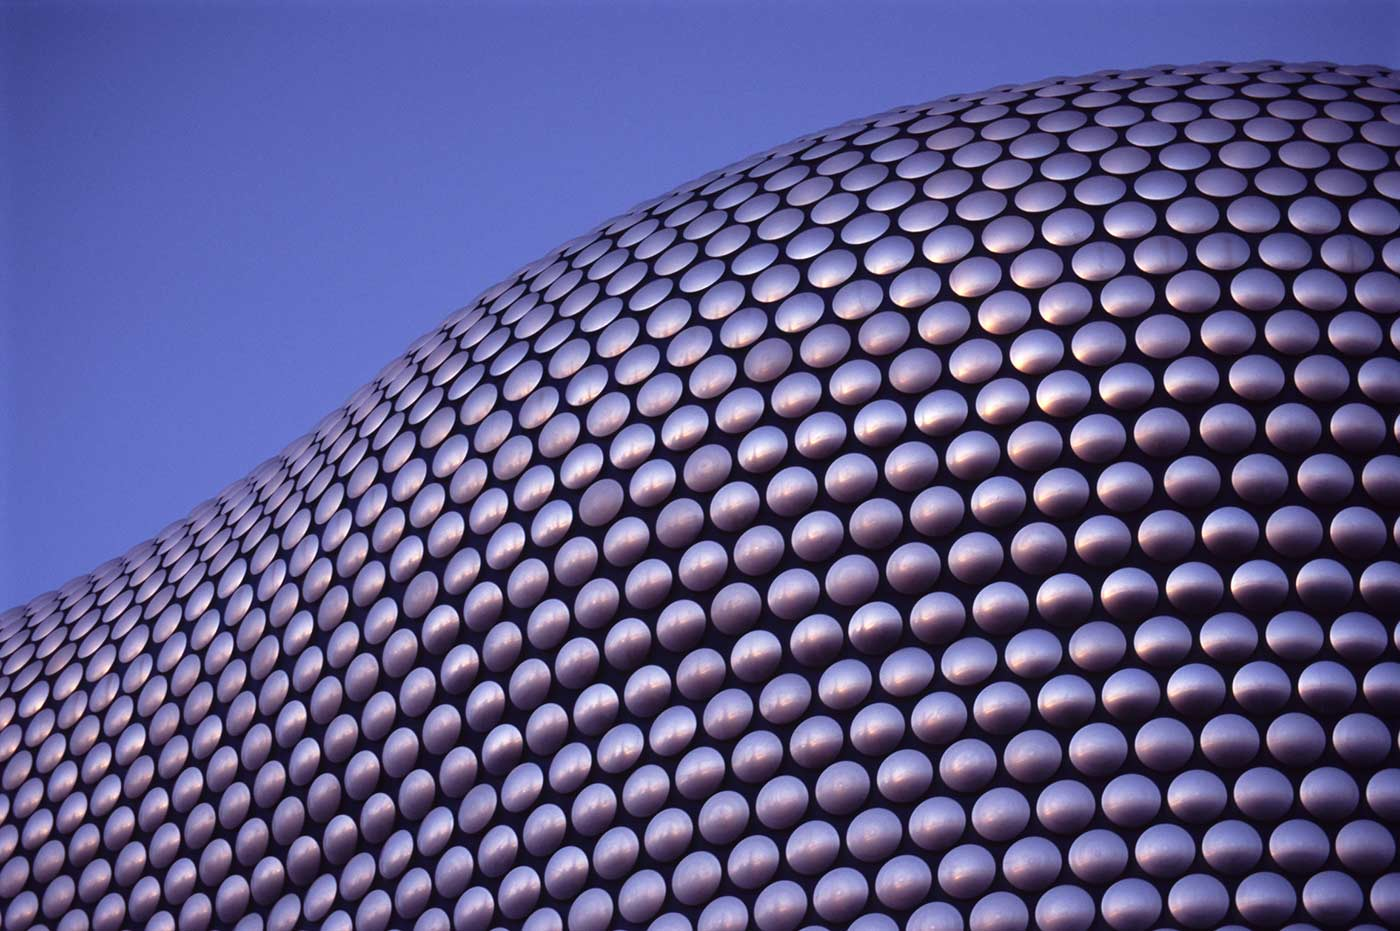 Close up on the cladding of the Selfridges Building at Birmingham Bullring Shopping Center.